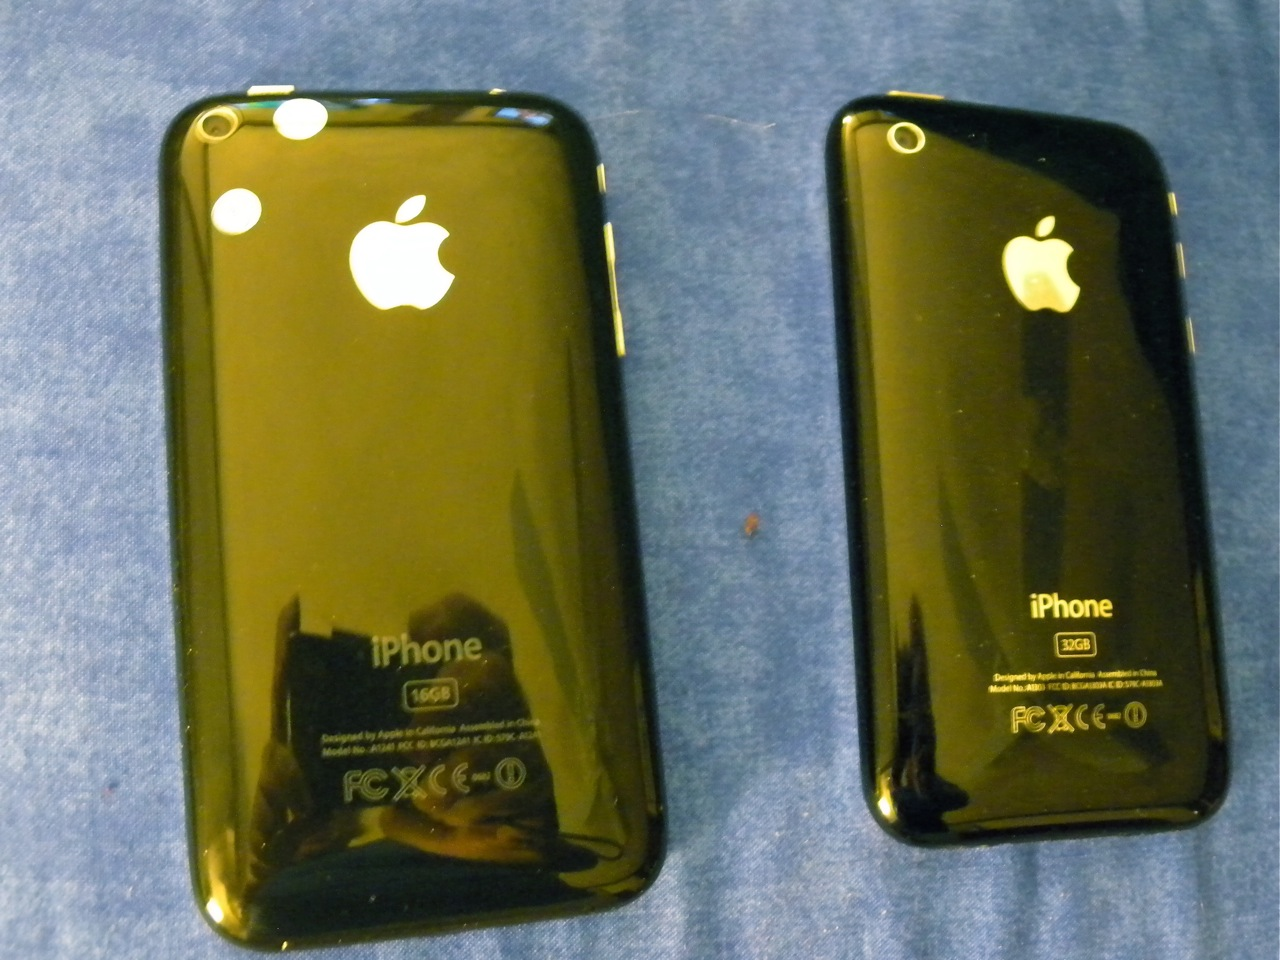 My Chinese iPhone knockoff is on the left. My real iPhone is on the right.